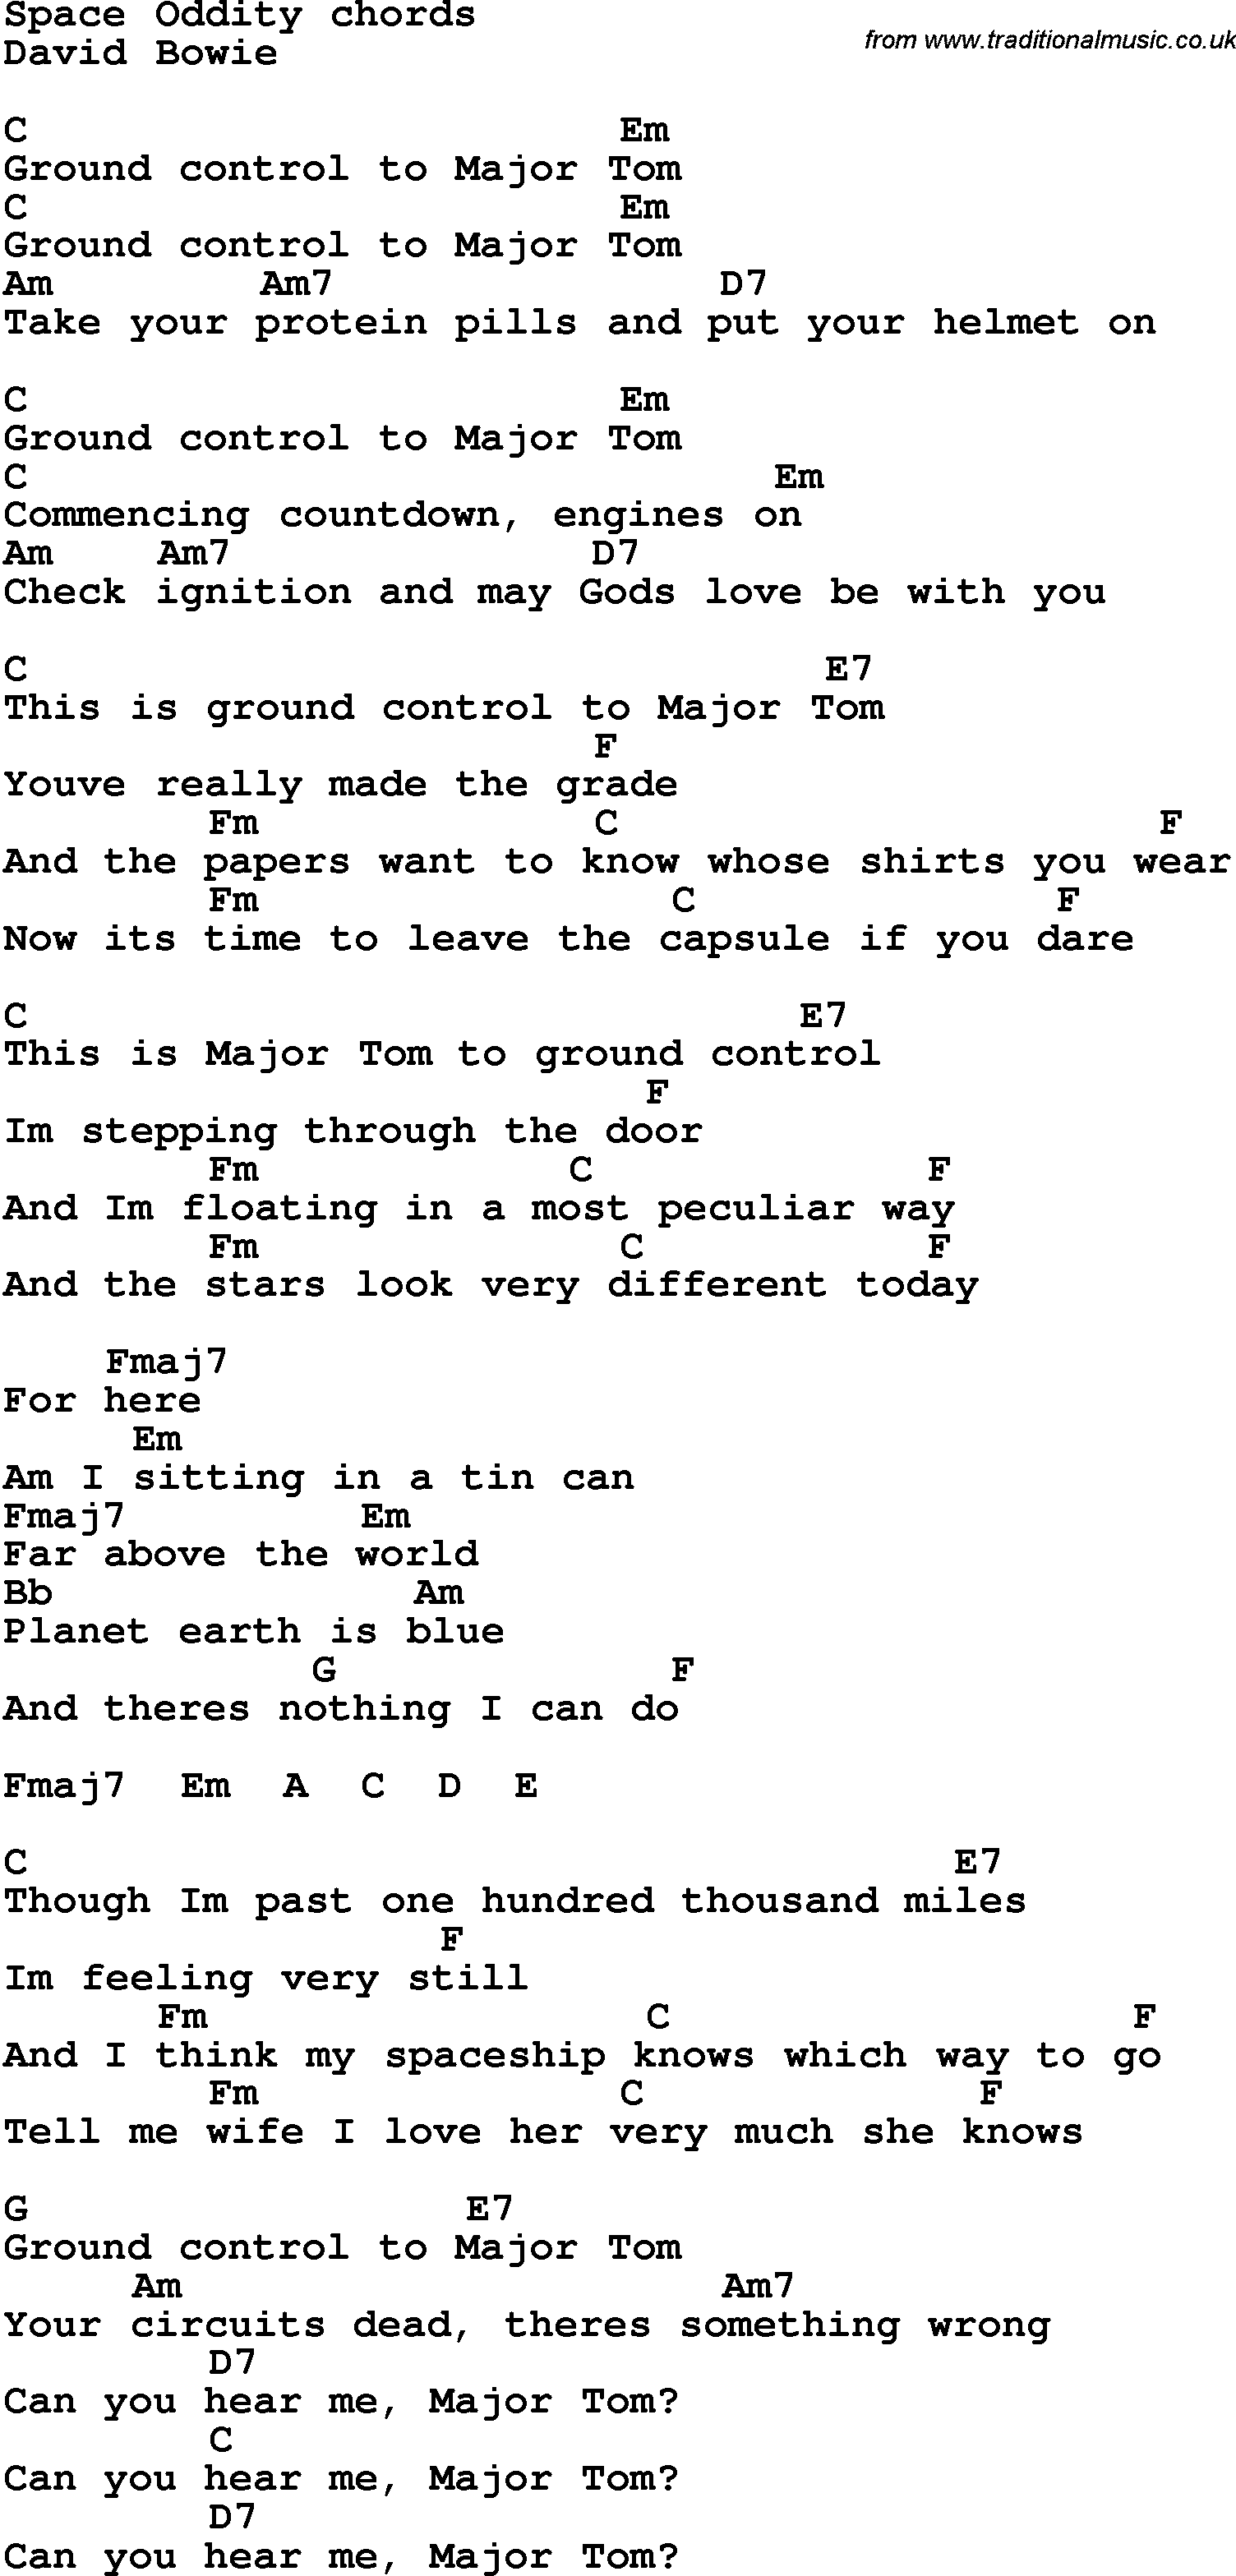 Lyrics with guitar chords for space oddity chords for space oddity lyrics with guitar chords for space oddity chords for space oddity hexwebz Gallery